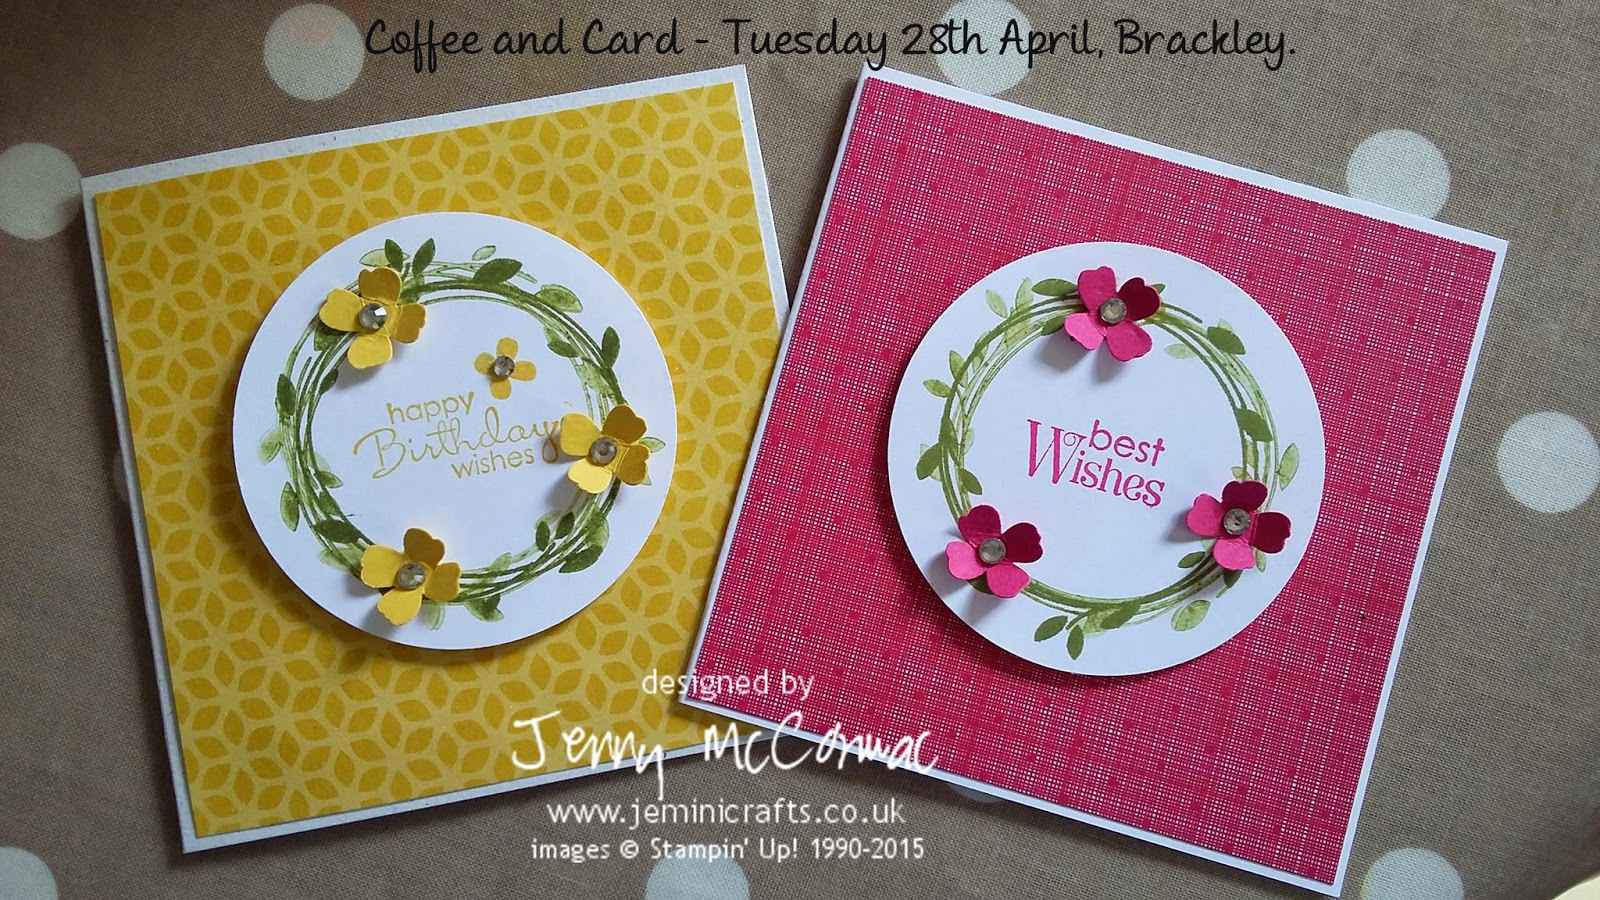 Coffee and Card with Jemini Crafts www.jeminicrafts.co.uk